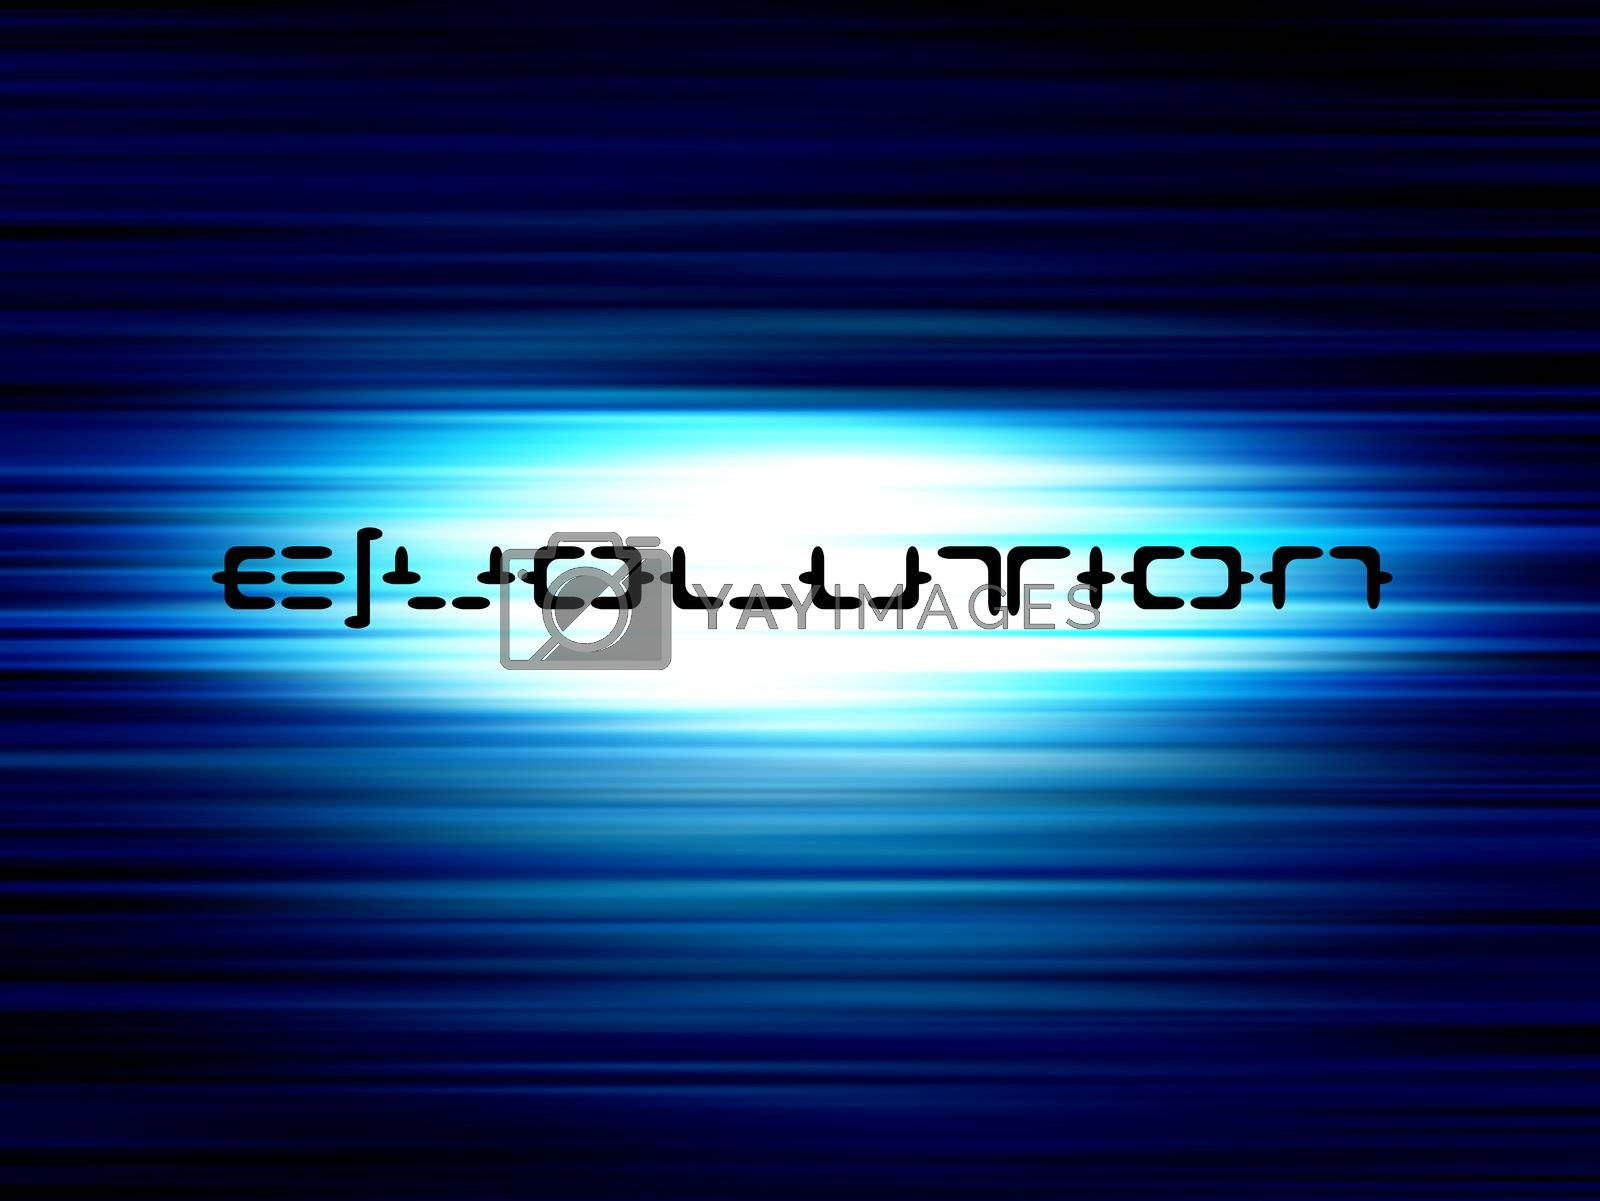 evolution text on bllue background